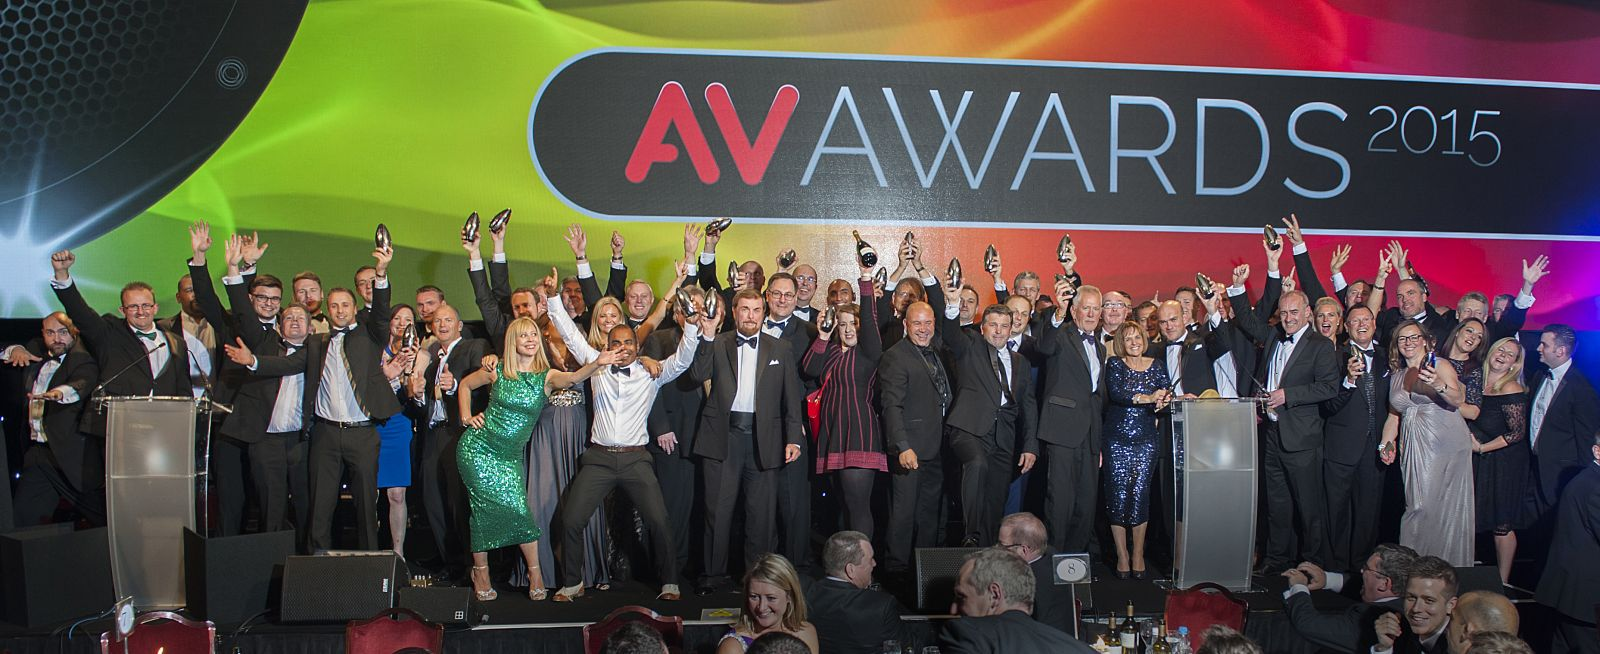 AV Award 2015 - Best Retail Project of the year 2015